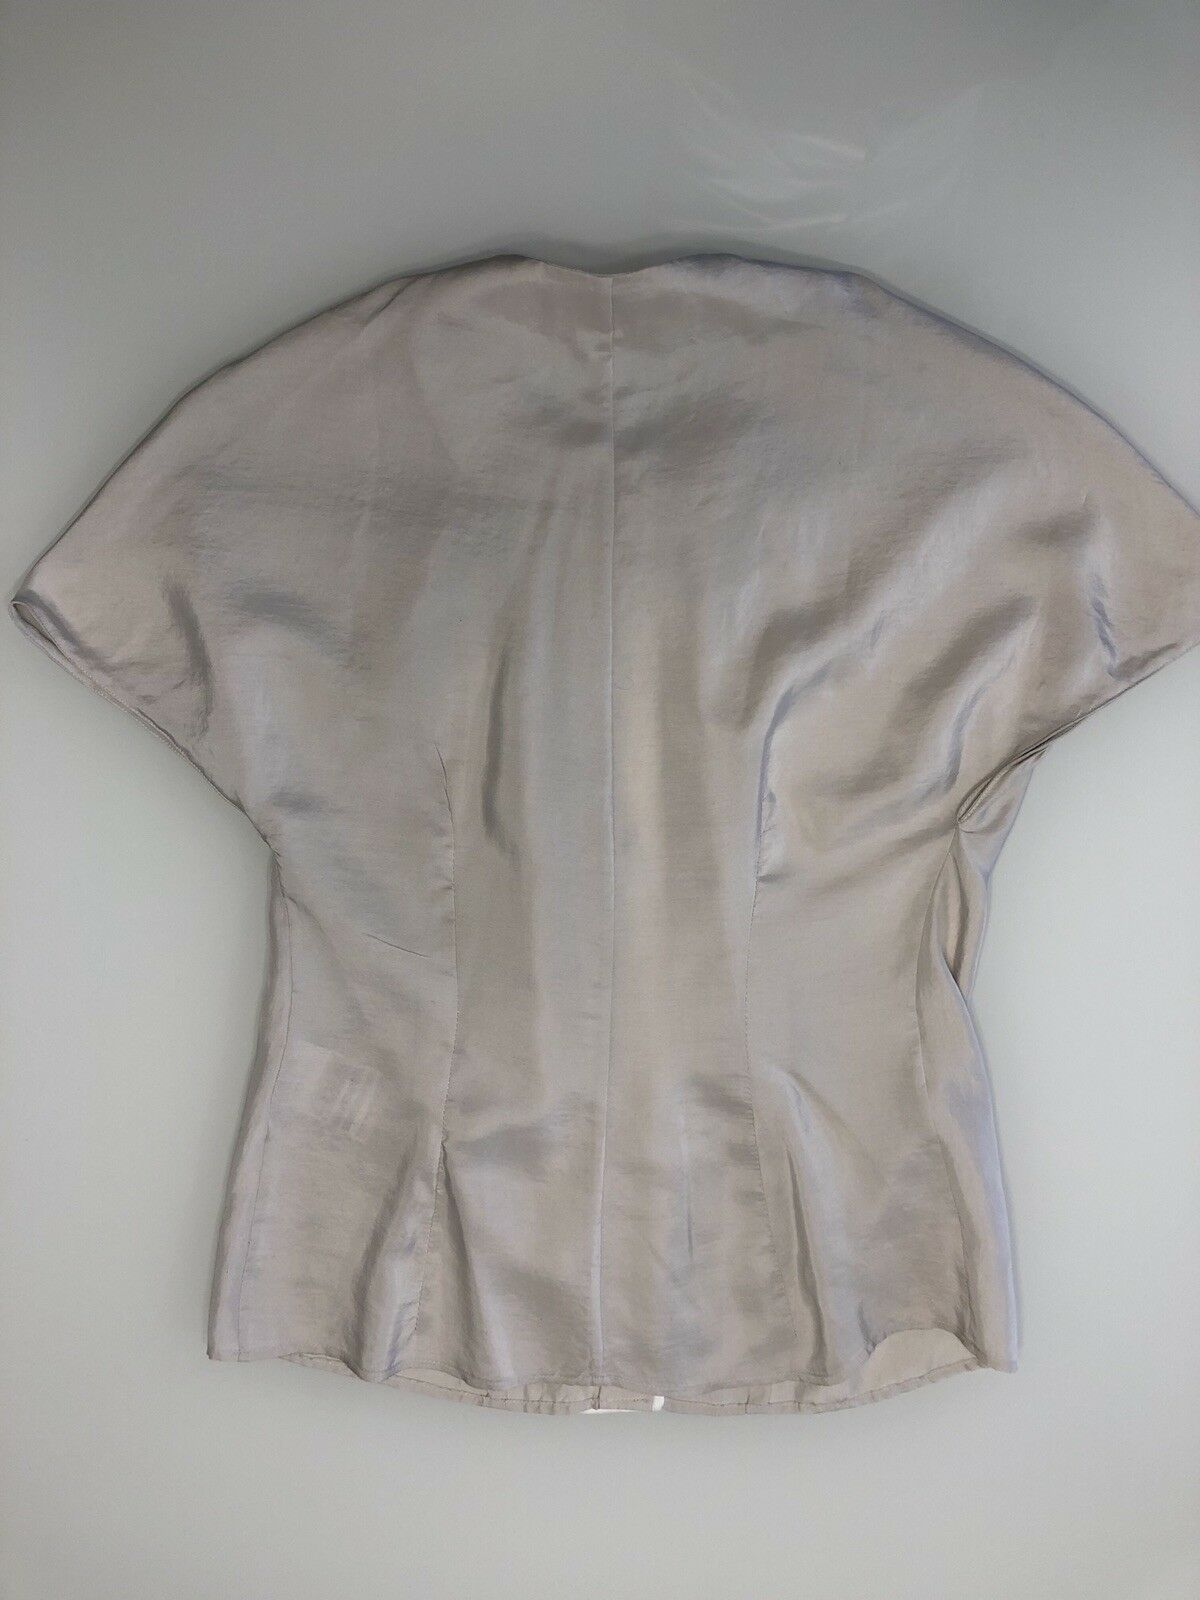 Balenciaga Silk Blouse Top Taupe Cap Sleeves Size… - image 3